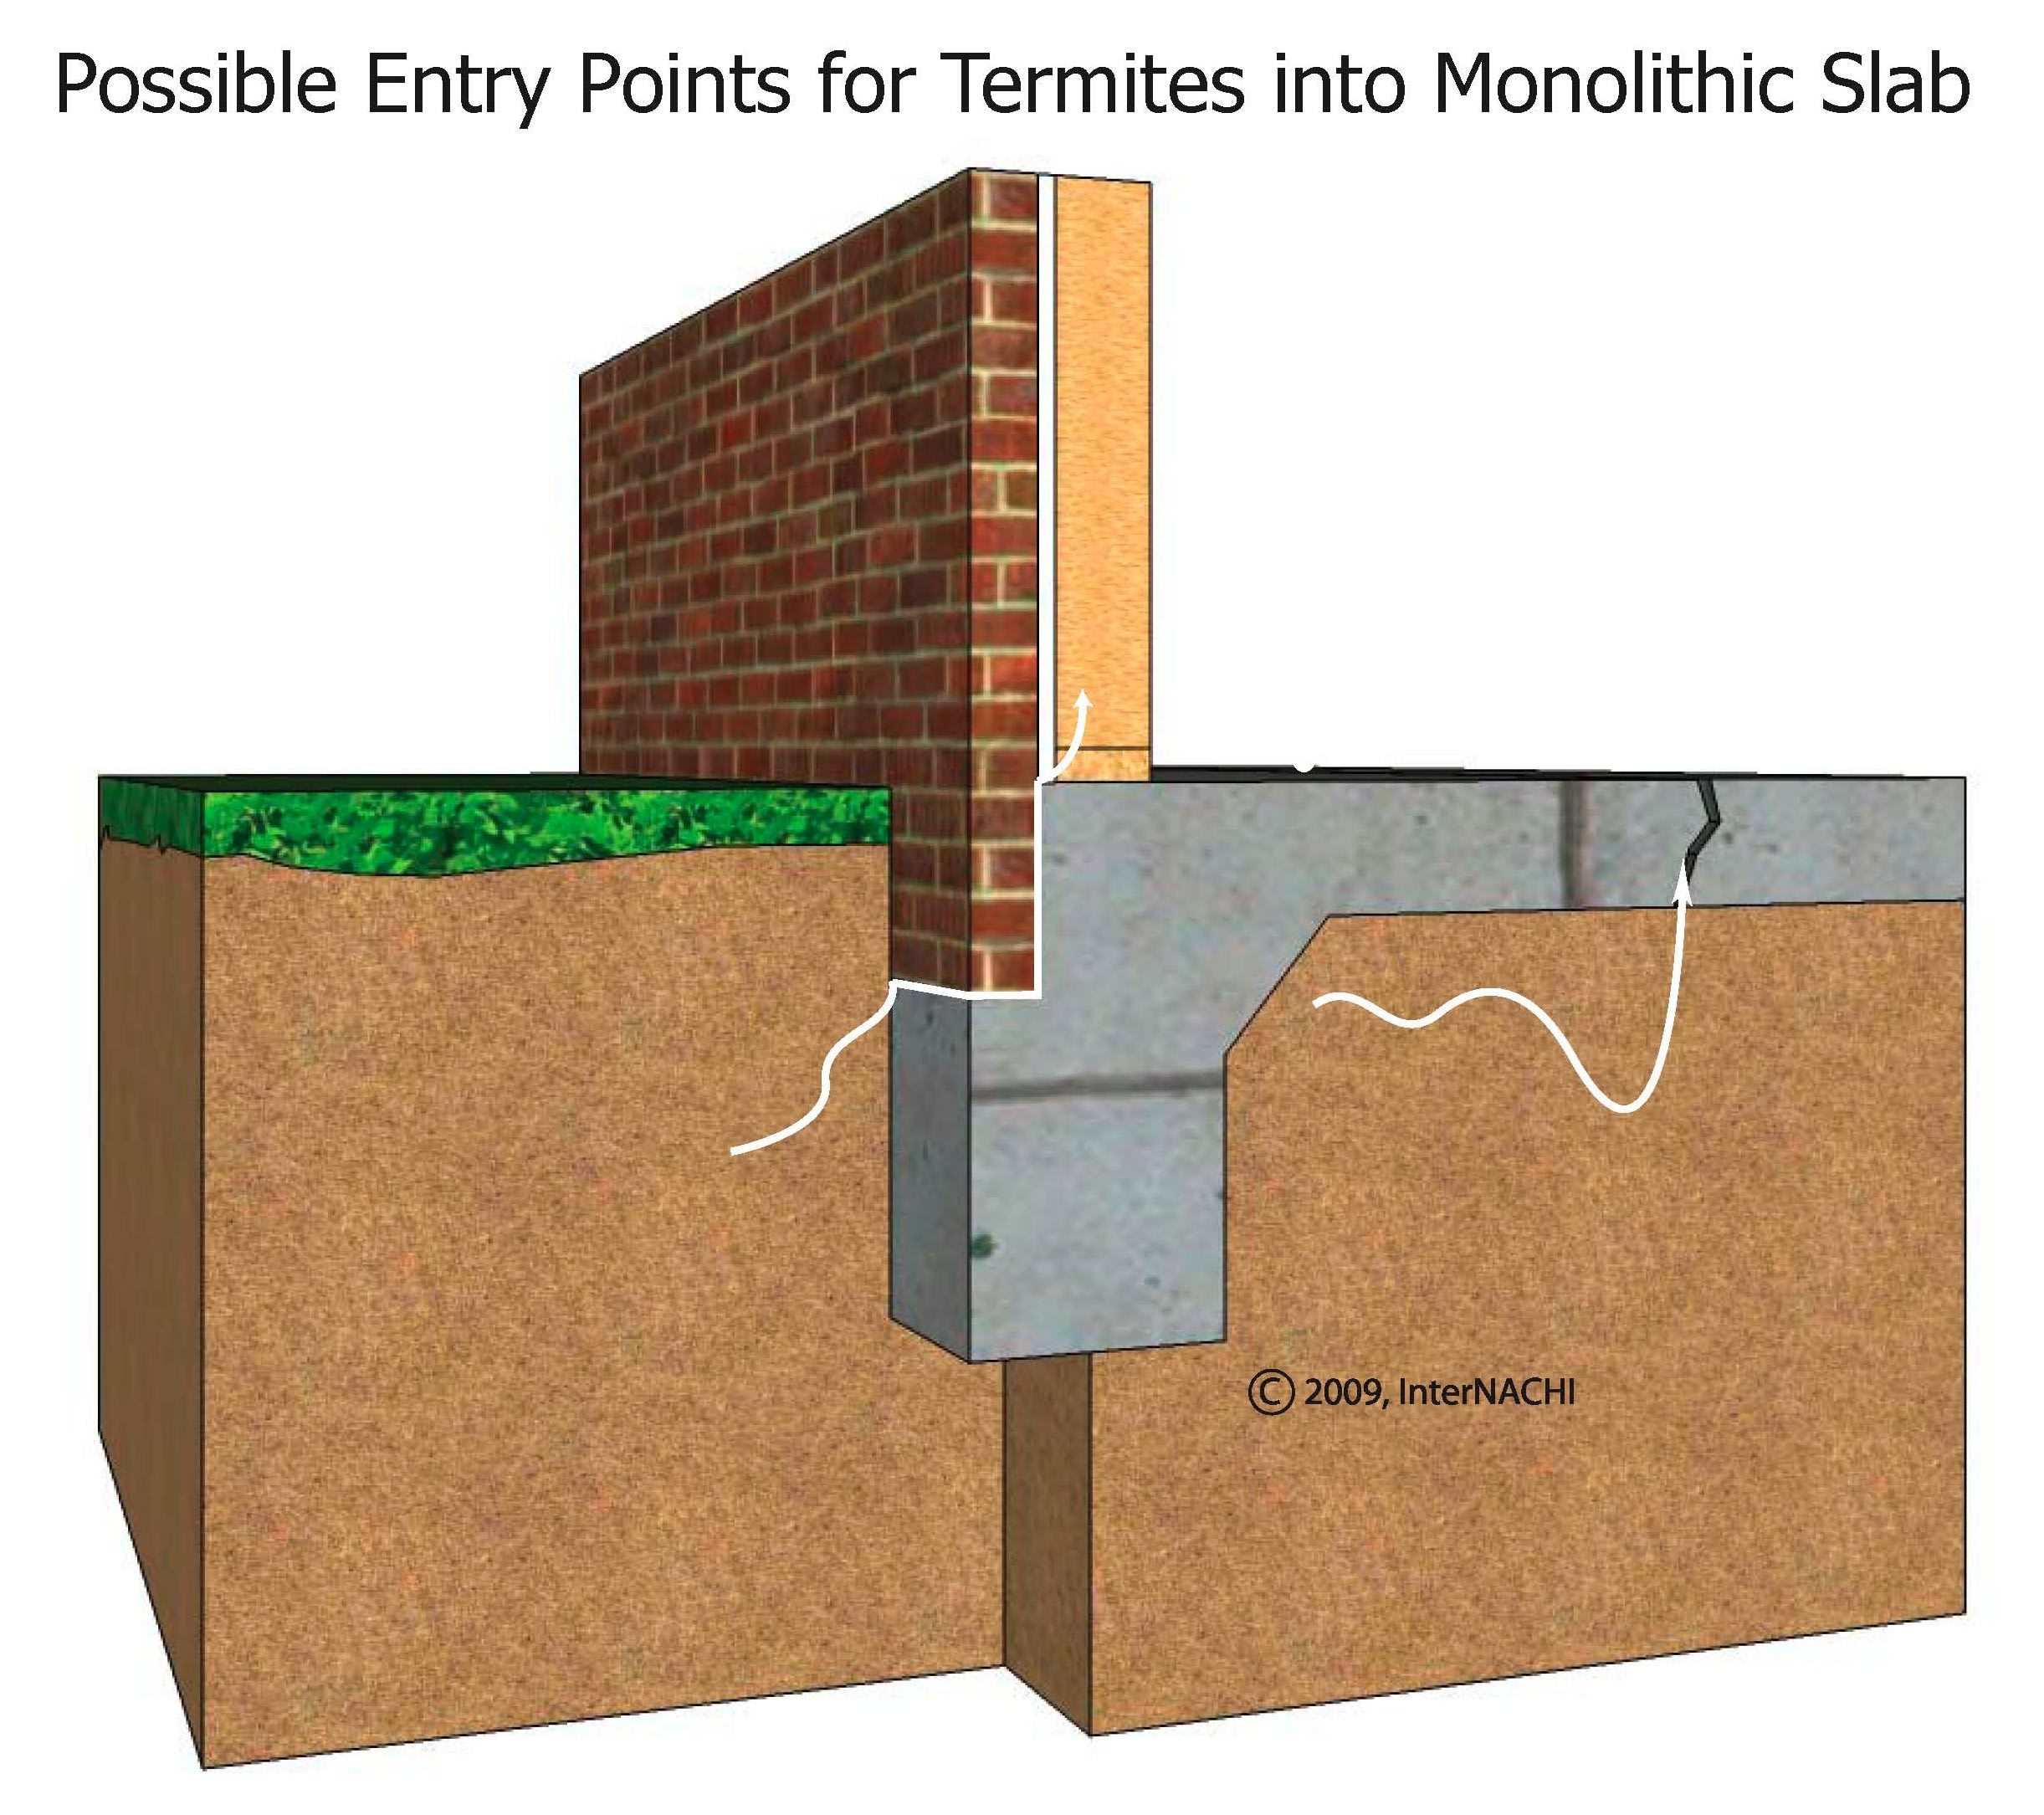 Termite entry into a monolithic slab.